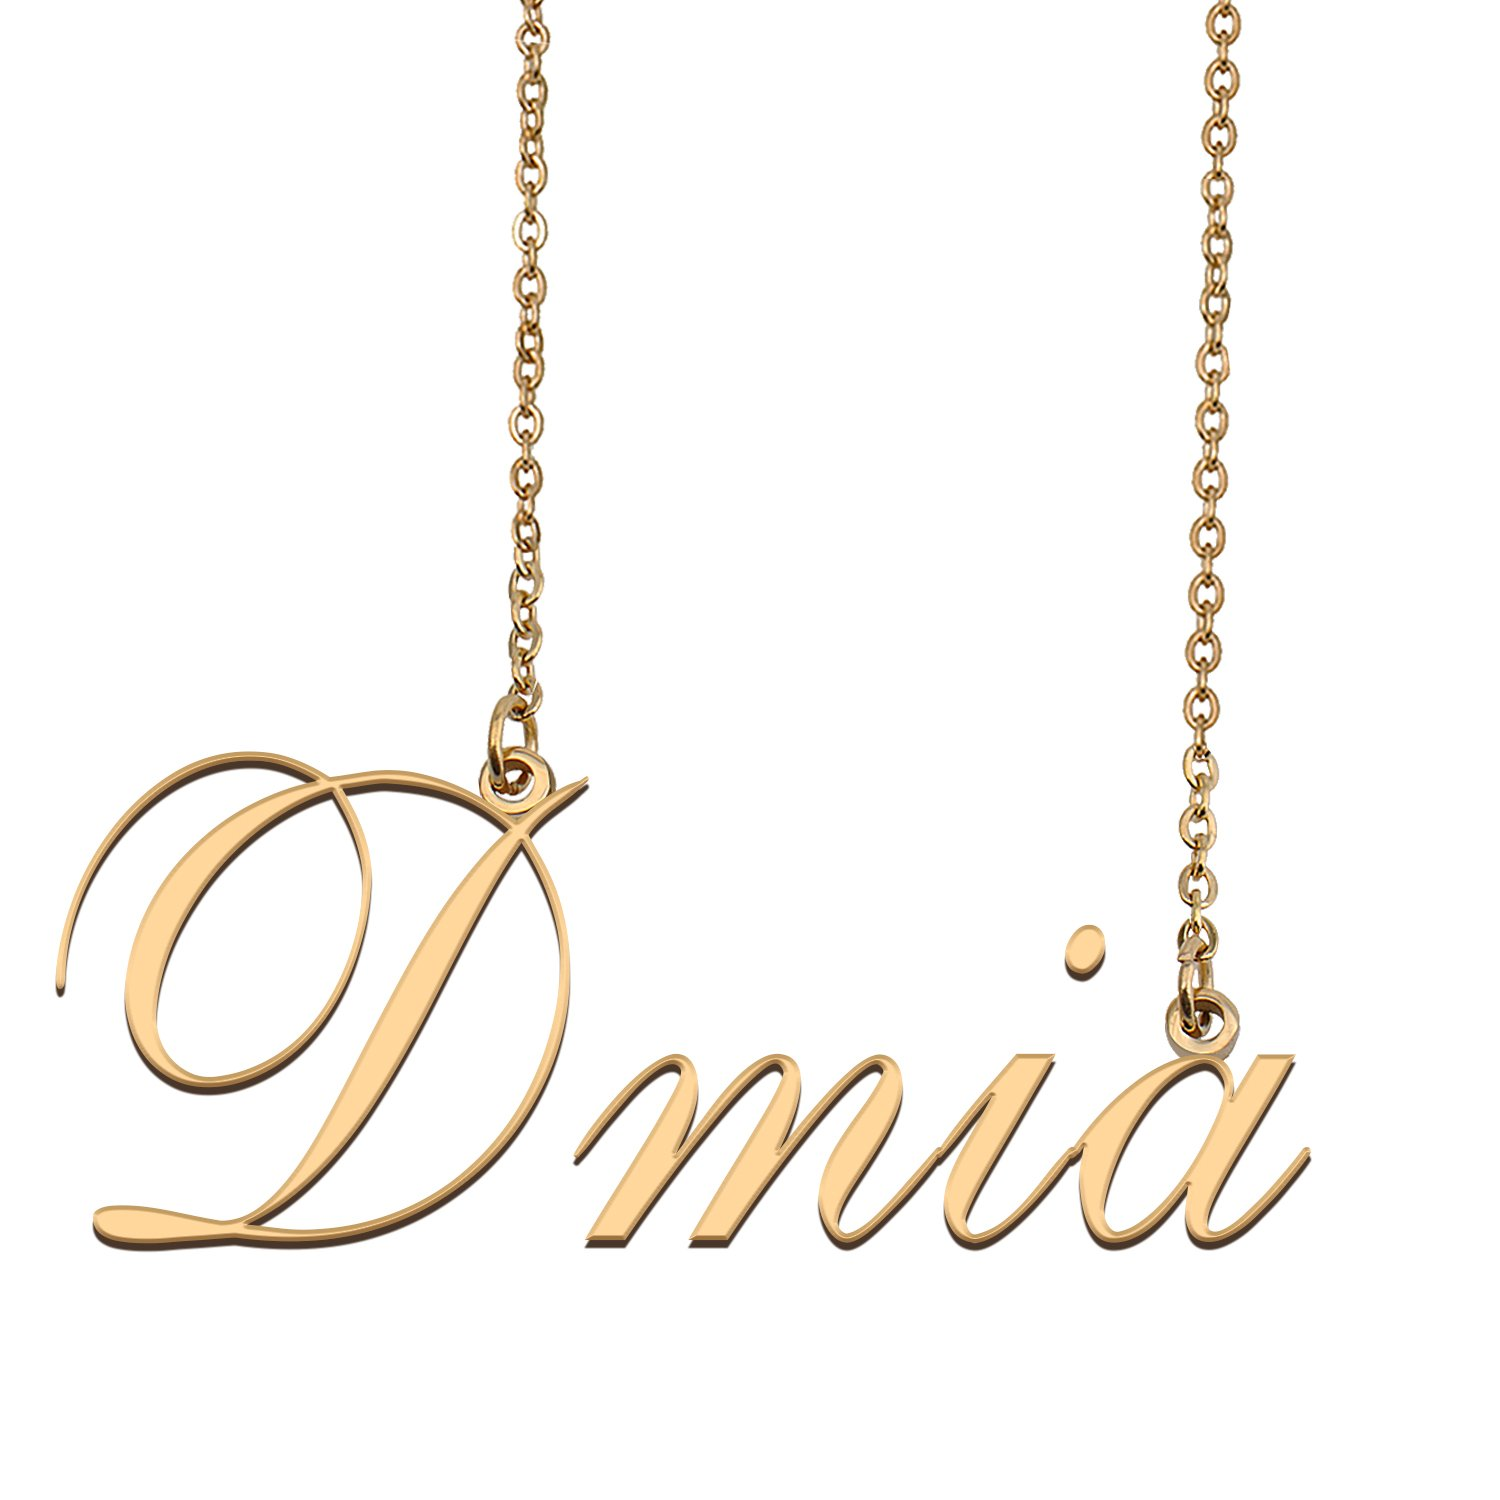 Customized Name Necklace 18K Gold Plated Jewelry Gift for Girlfriend for Her Kahmari